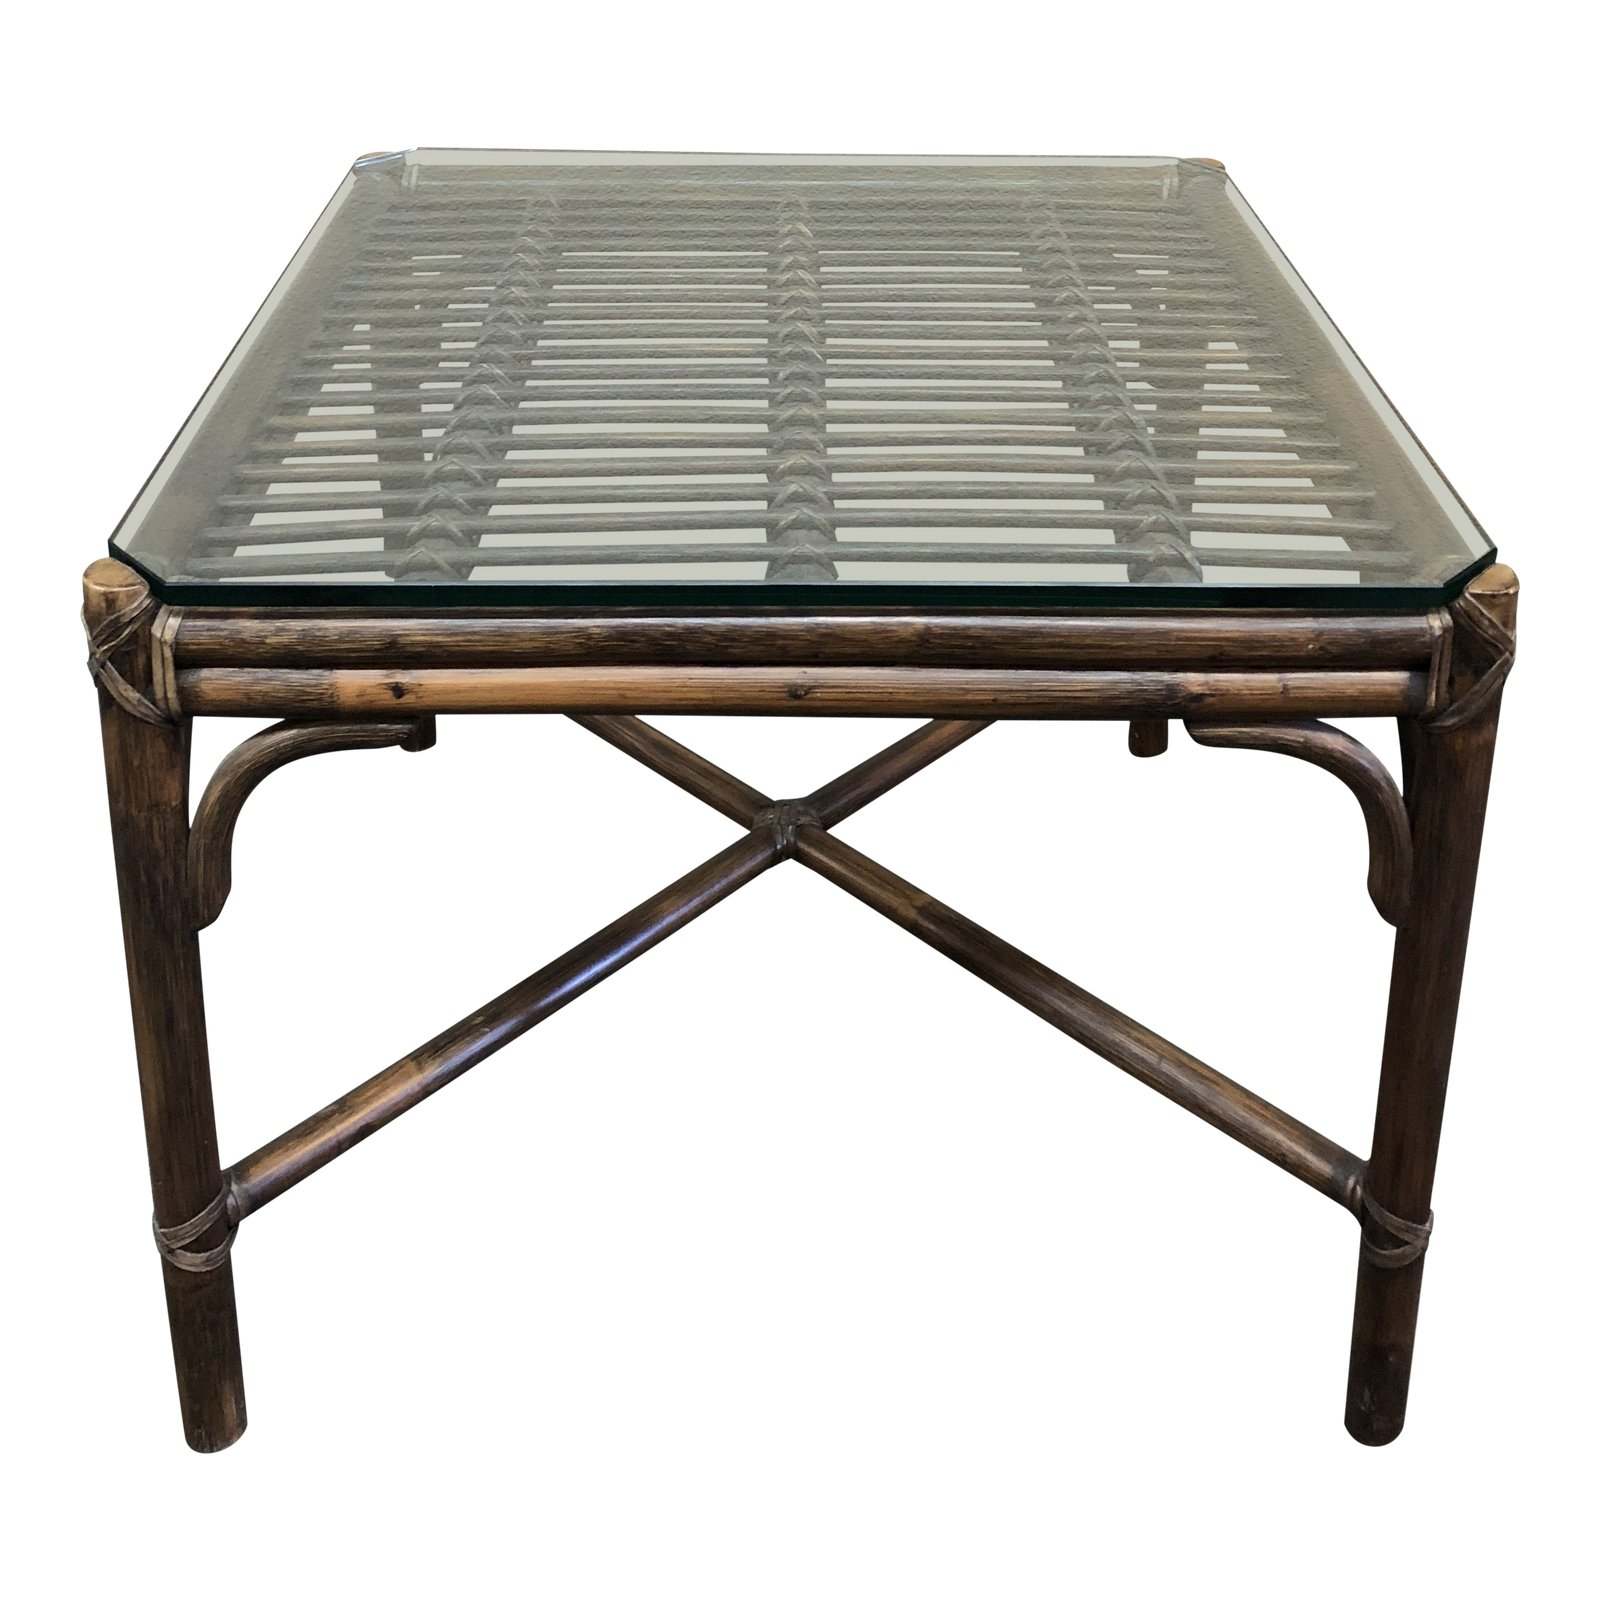 Bamboo Table With Design: McGuire Vintage Bamboo + Glass Accent Table